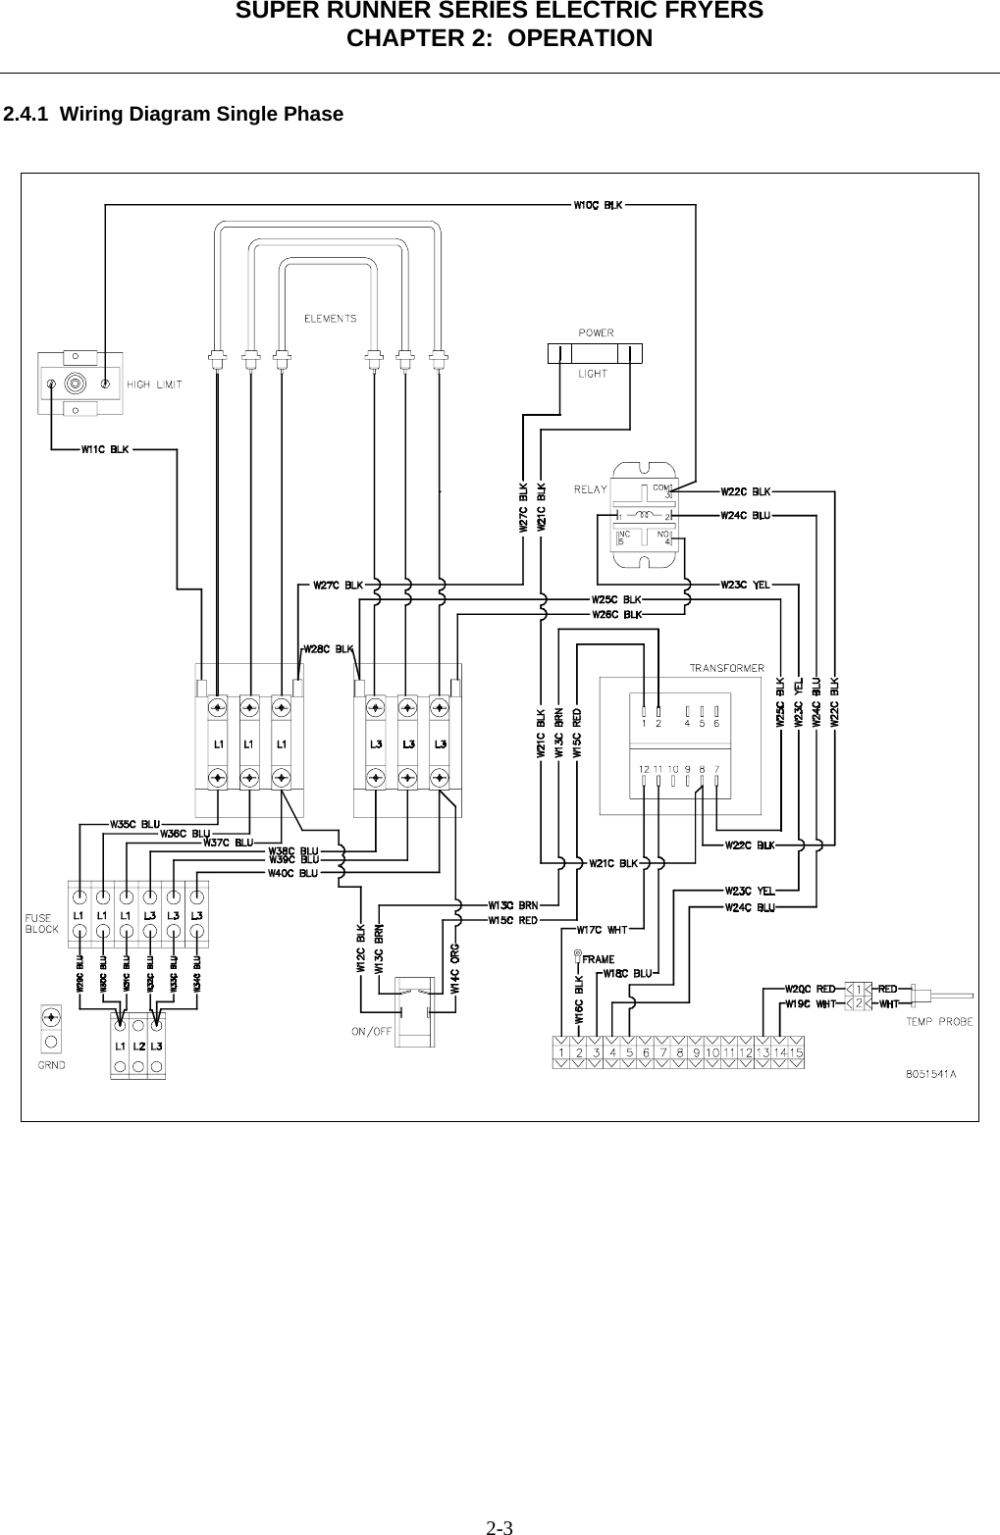 medium resolution of  lang wiring diagram frymaster sr114e sr electric io front cover user manual to the on panasonic